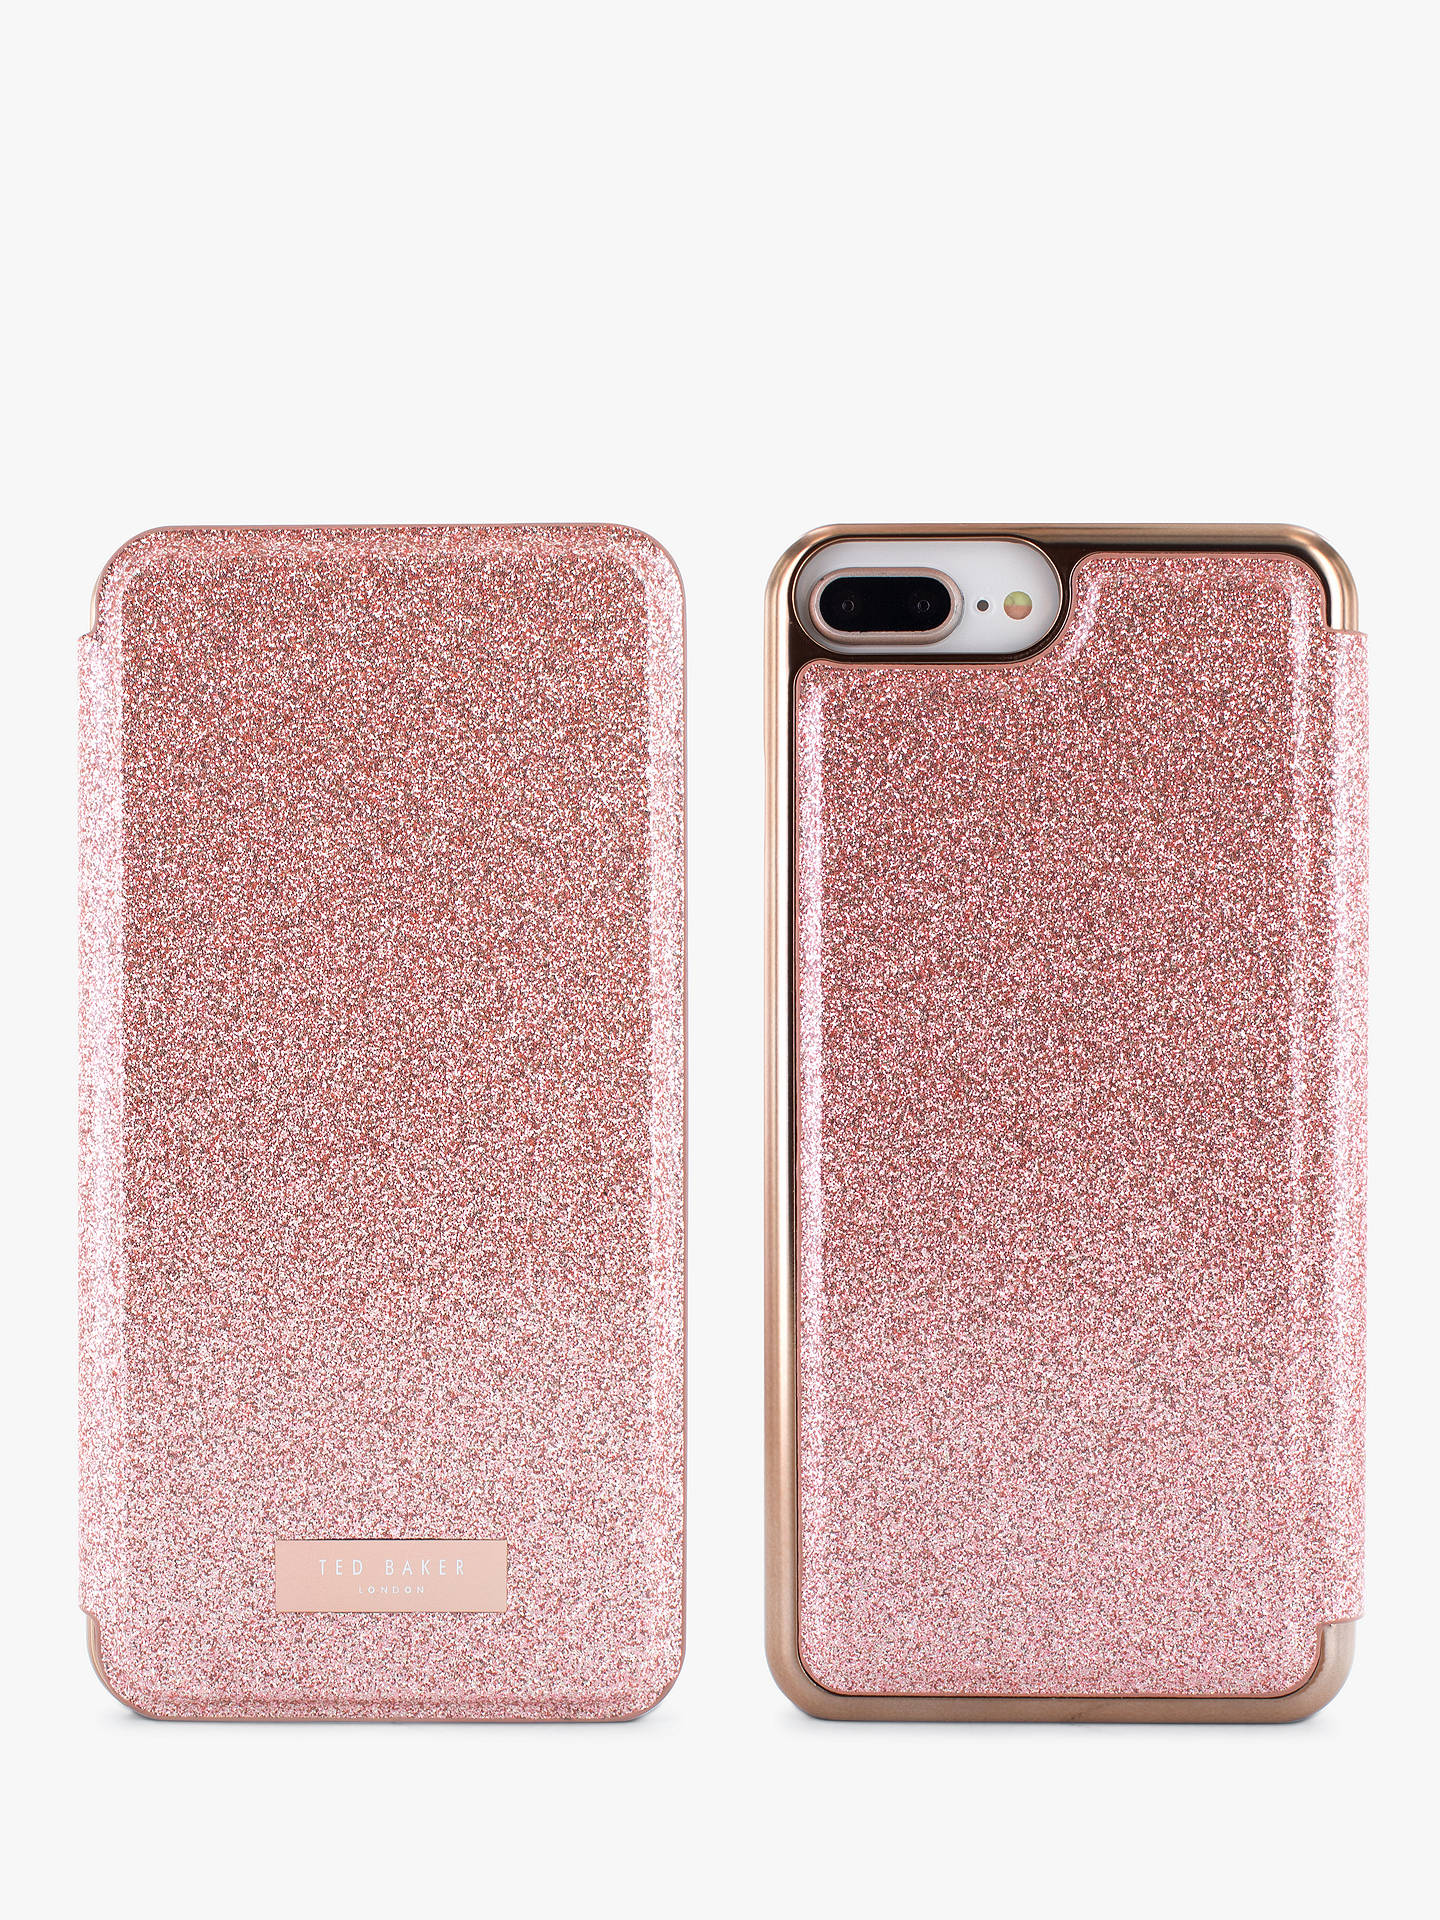 finest selection e7450 f098c Ted Baker SPRITSIE Mirror Folio Case for iPhone 6/7 and 8 Plus, Rose Gold